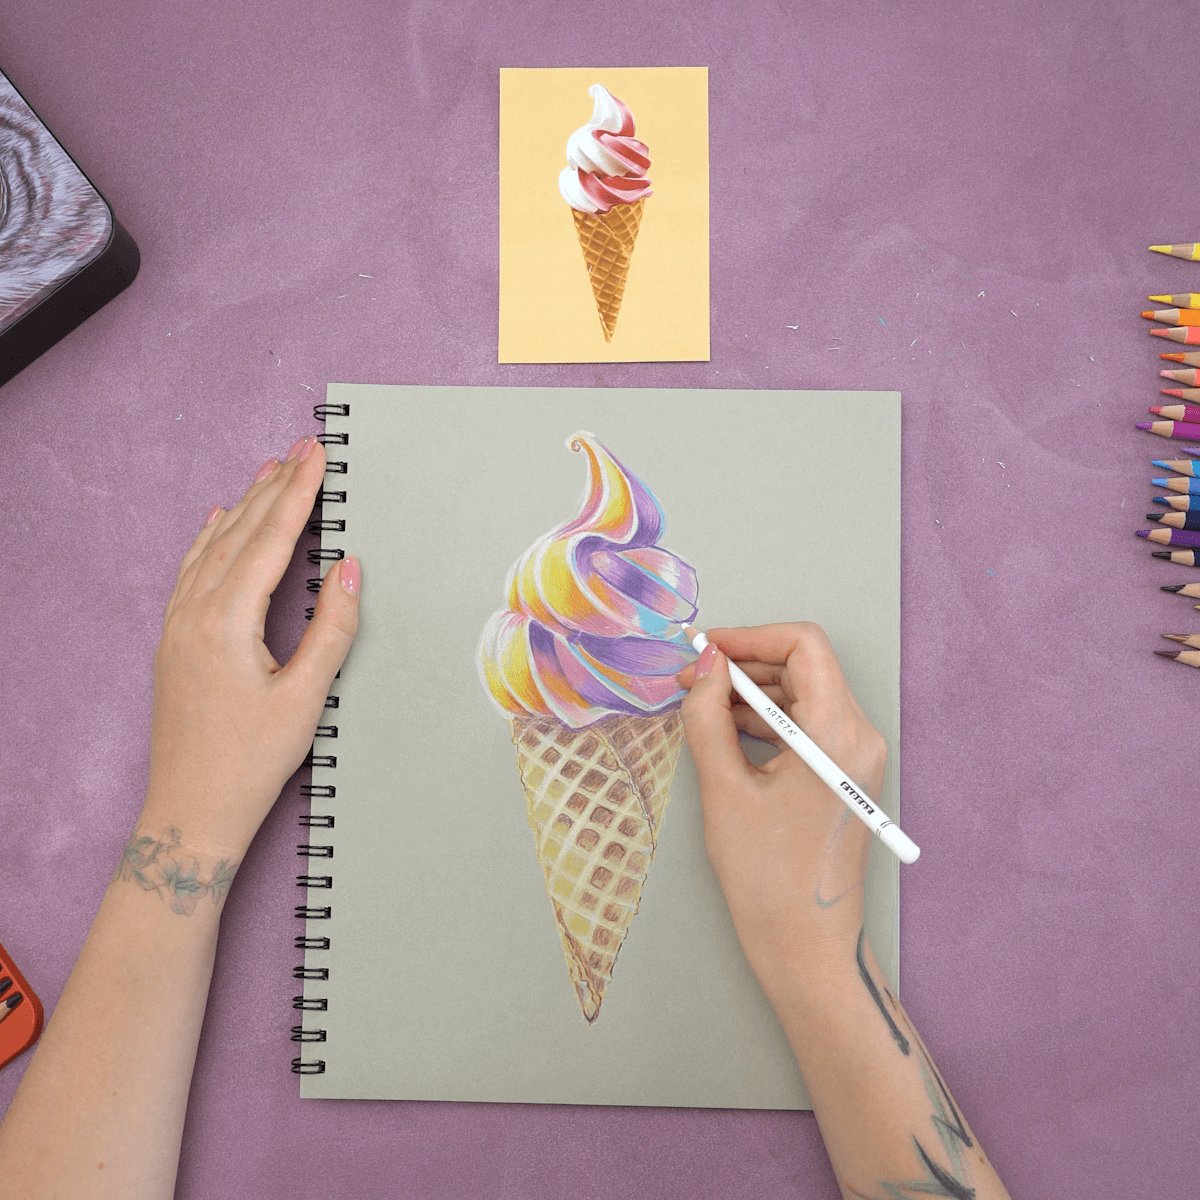 How To Draw Ice Cream With Colored Pencils Arteza Camp Day 5 Arteza How to draw an ice cream | the emoji movie. to draw ice cream with colored pencils